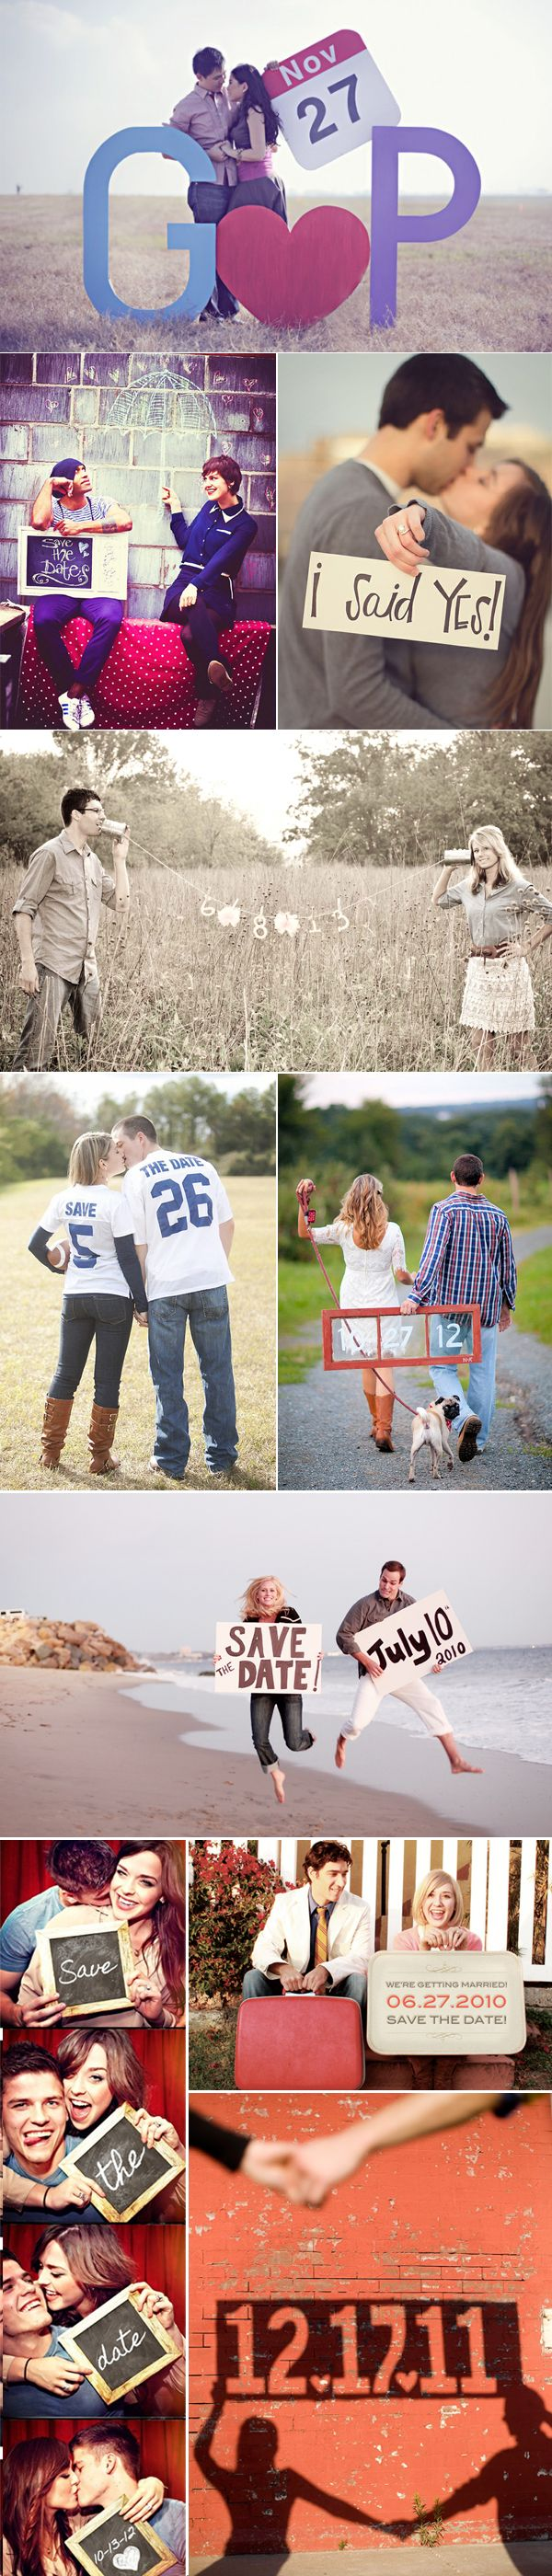 fun save the date ideas!